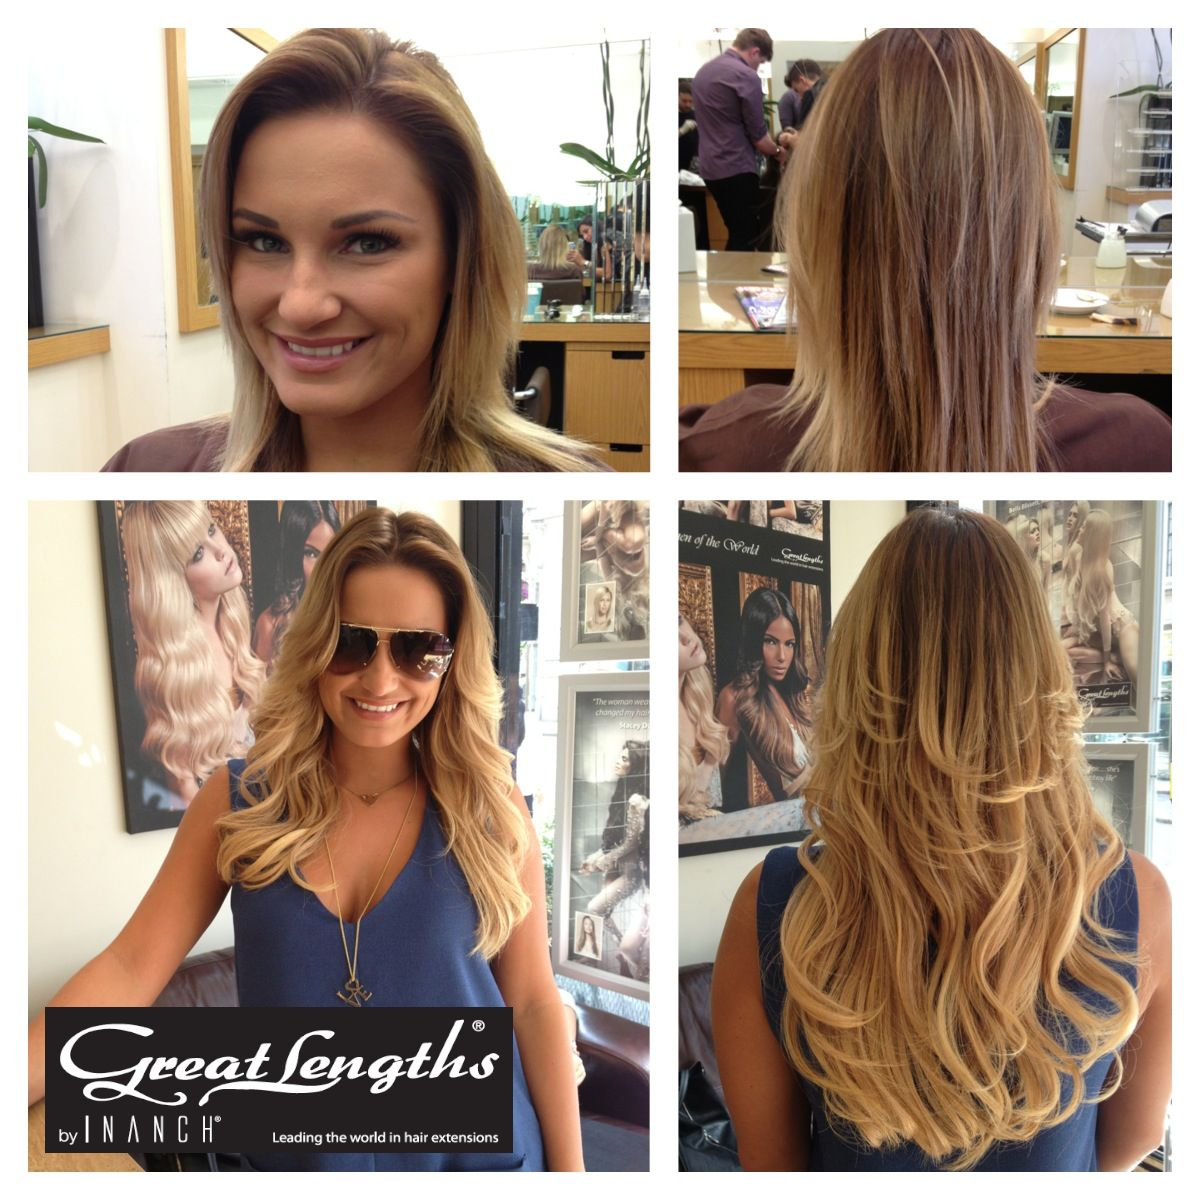 towie's most stylish lady sam faiers with her new dip-dye